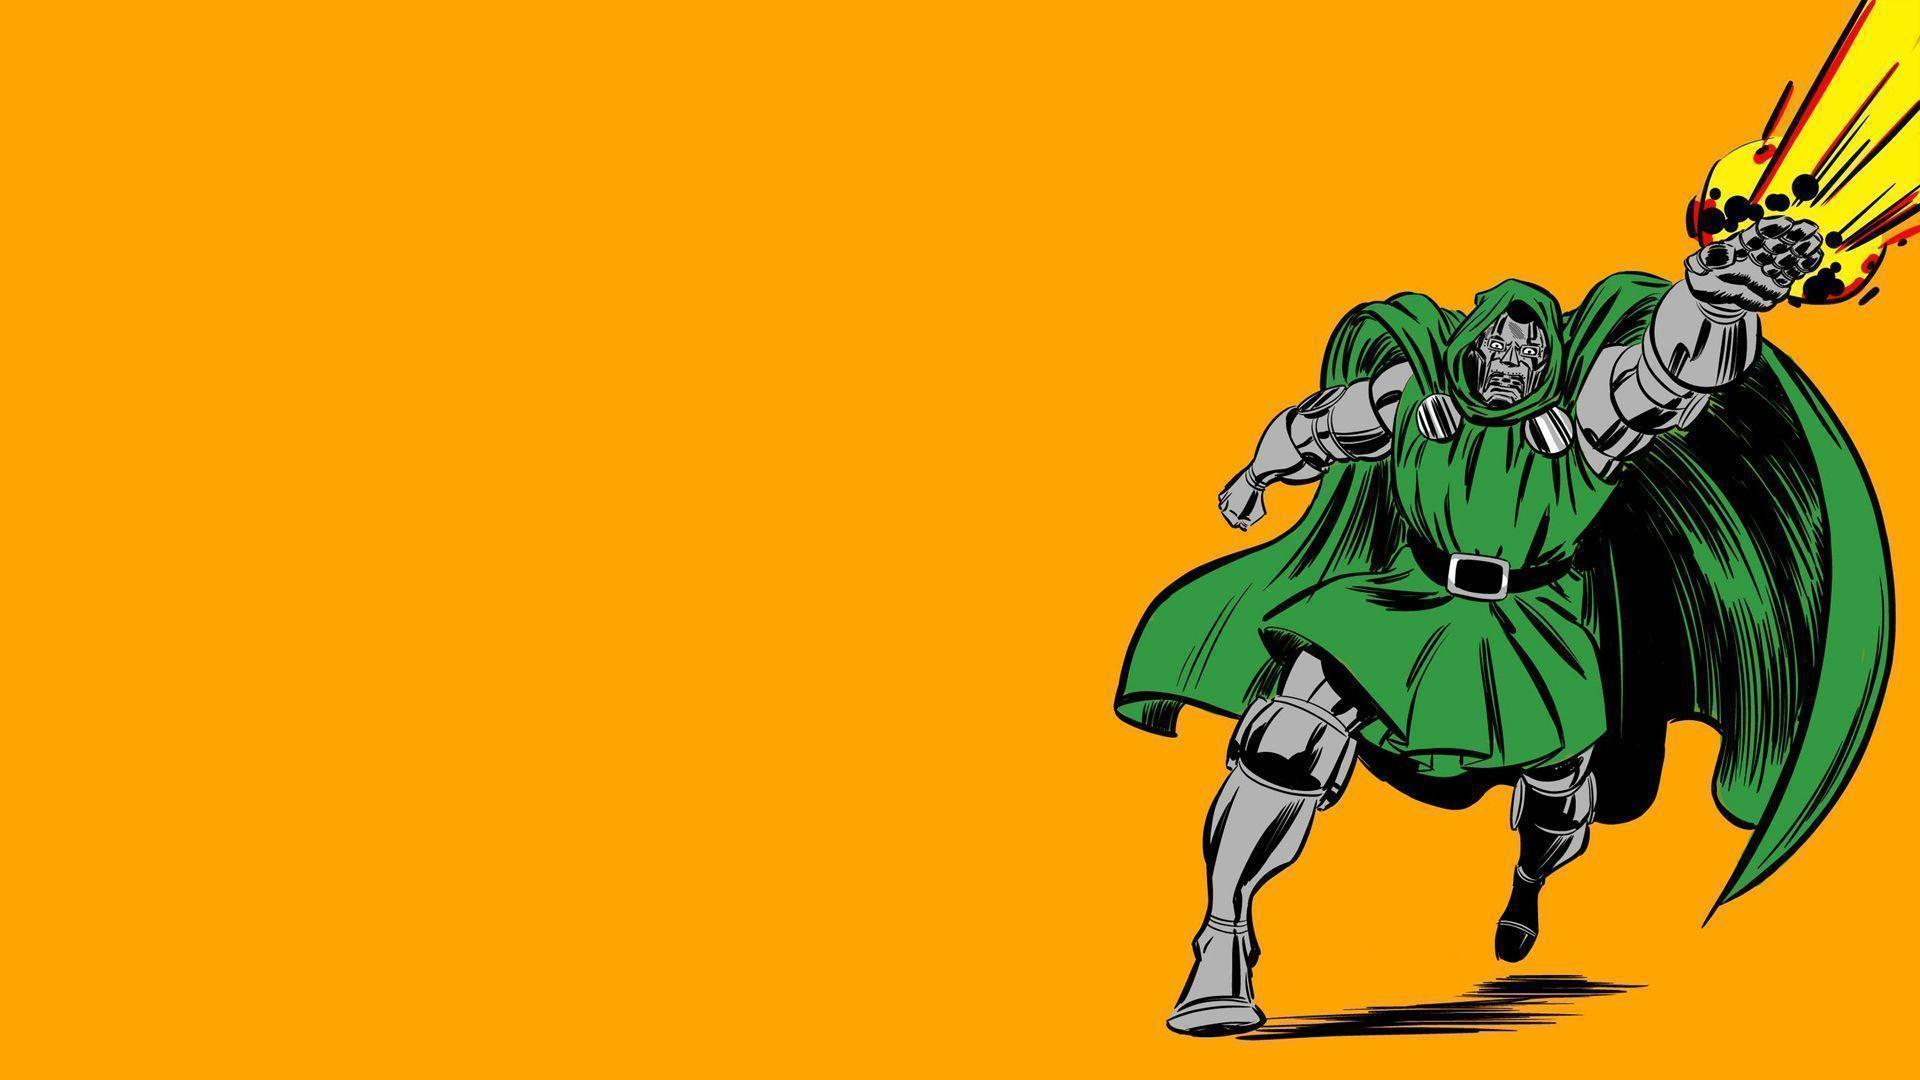 mf doom wallpaper 9 - photo #14